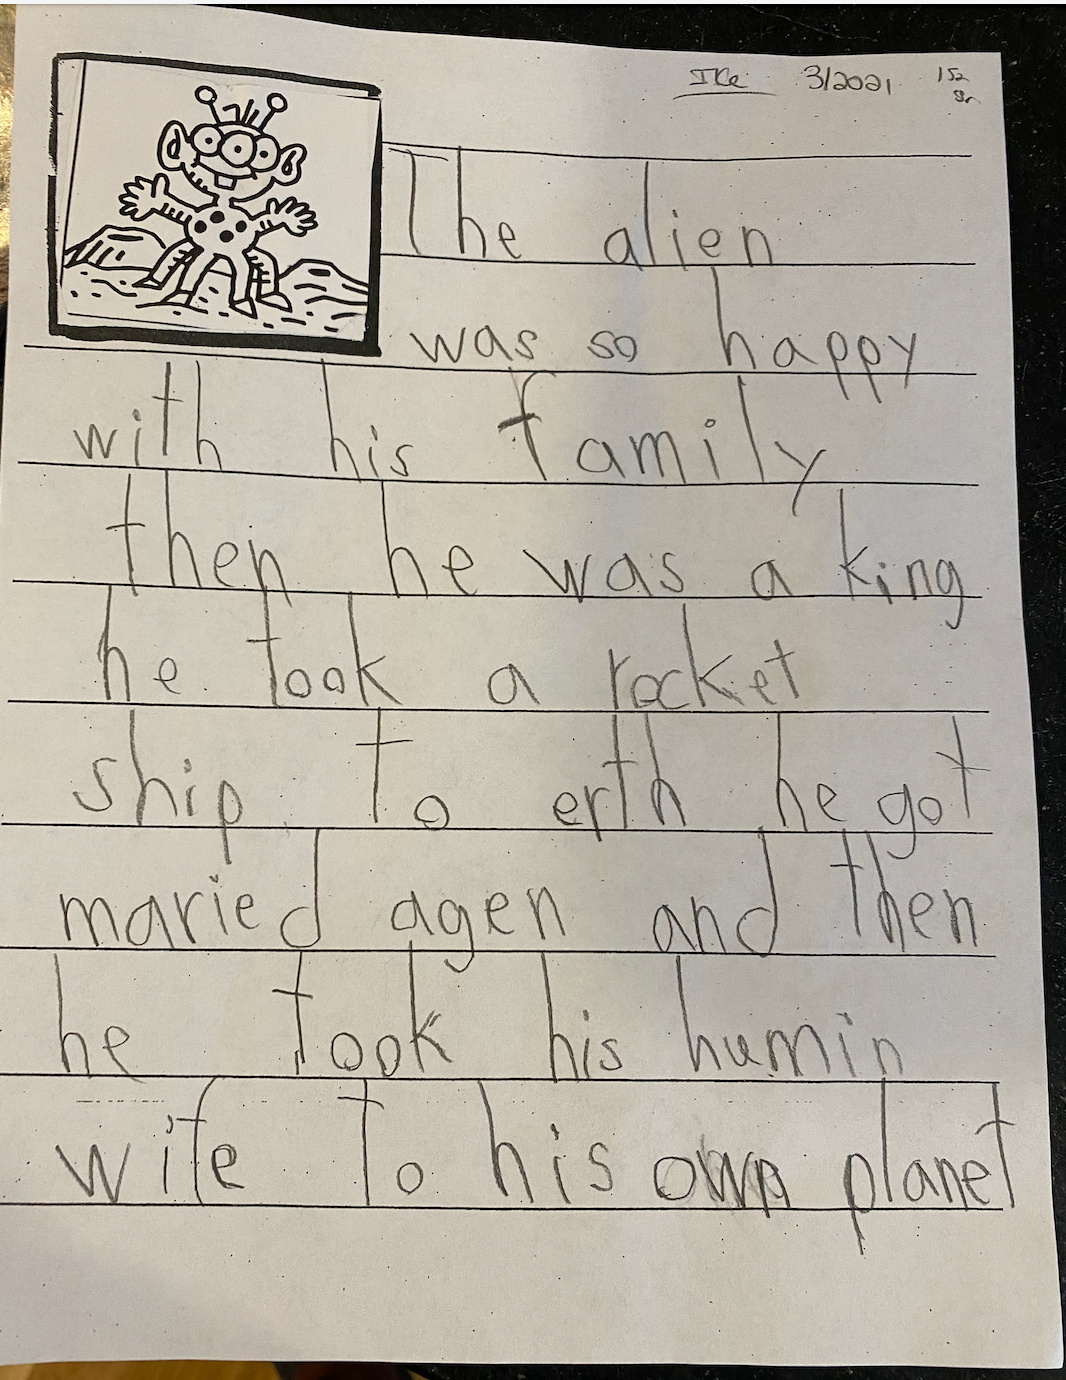 TRANSCRIPTION: The alien was so happy with his family. Then he was a king. He took a rocket ship to erth. He got married again, and then he took his human wife to his own planet.